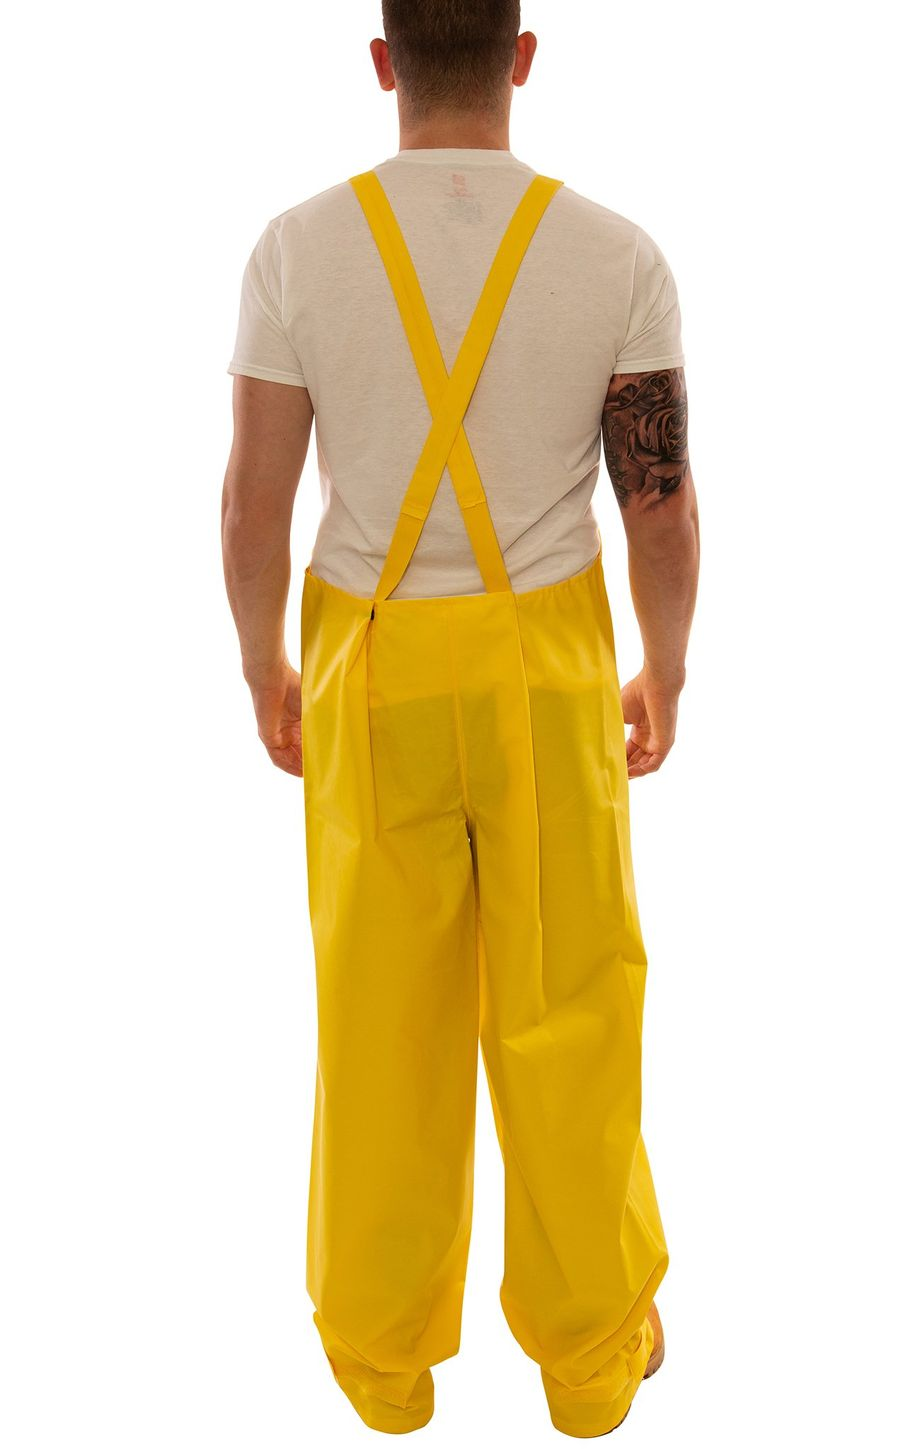 tingley-o56047-durablast-flame-resistant-overalls-pvc-coated-chemical-resistant-back.jpg